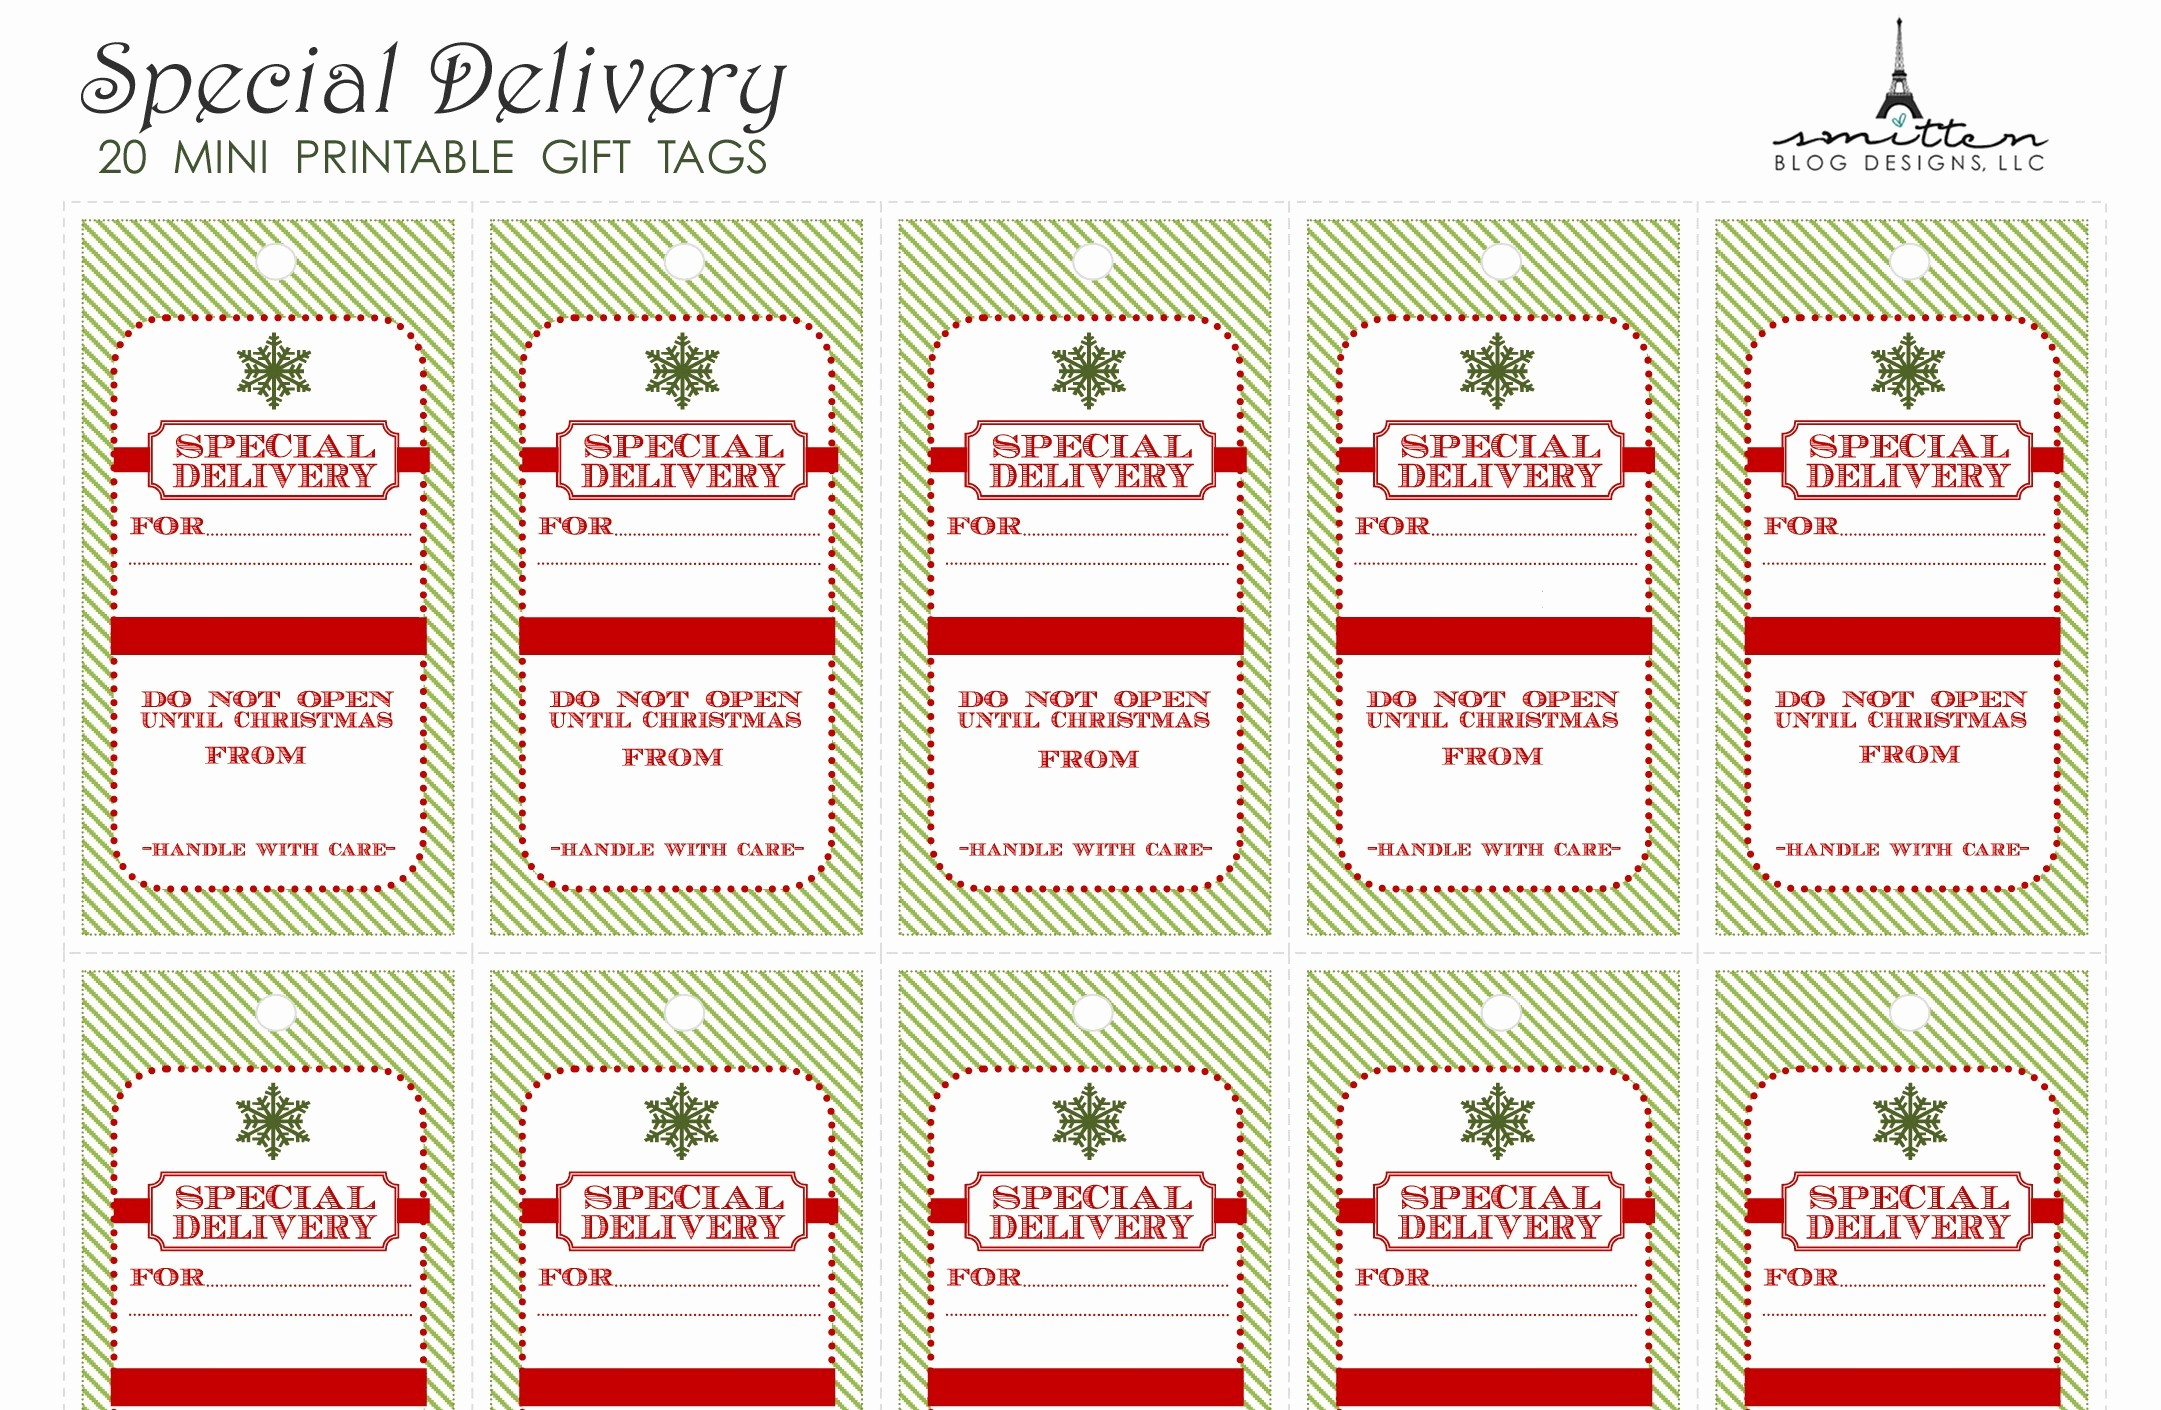 Free Tag Templates for Word Inspirational Free Printable Christmas Gift Tag Templates for Word